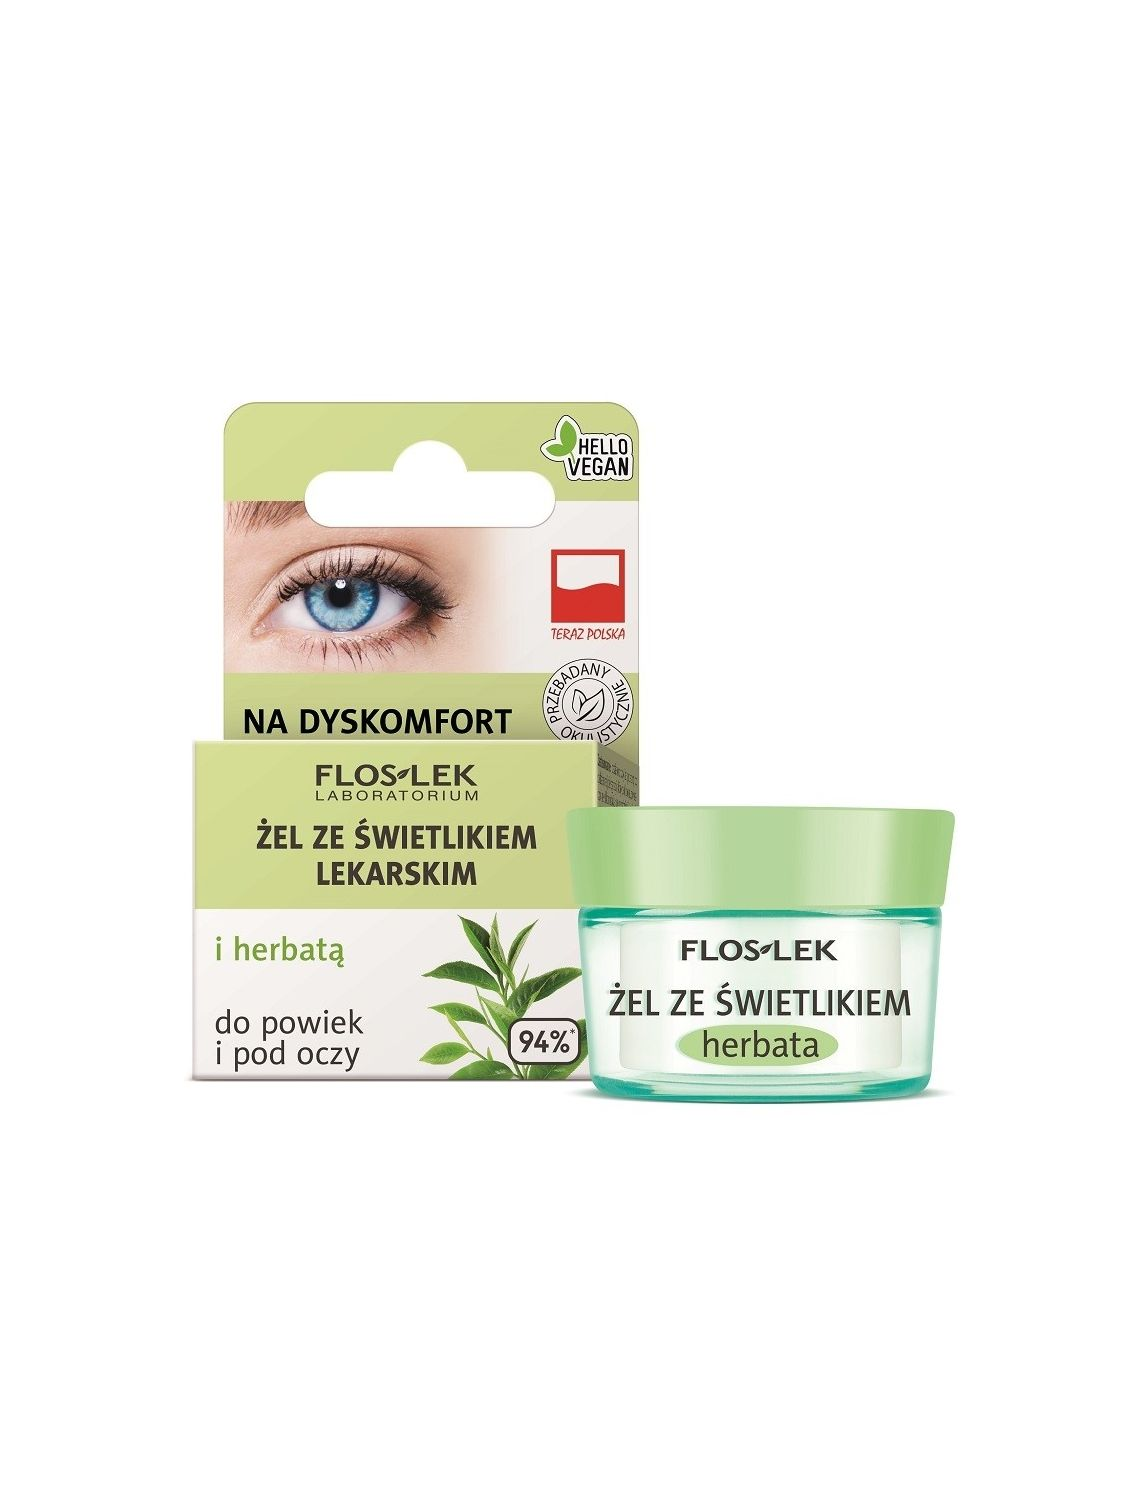 Lid and under eye gel with eyebright  and green tea for discomfort - 10g -Floslek